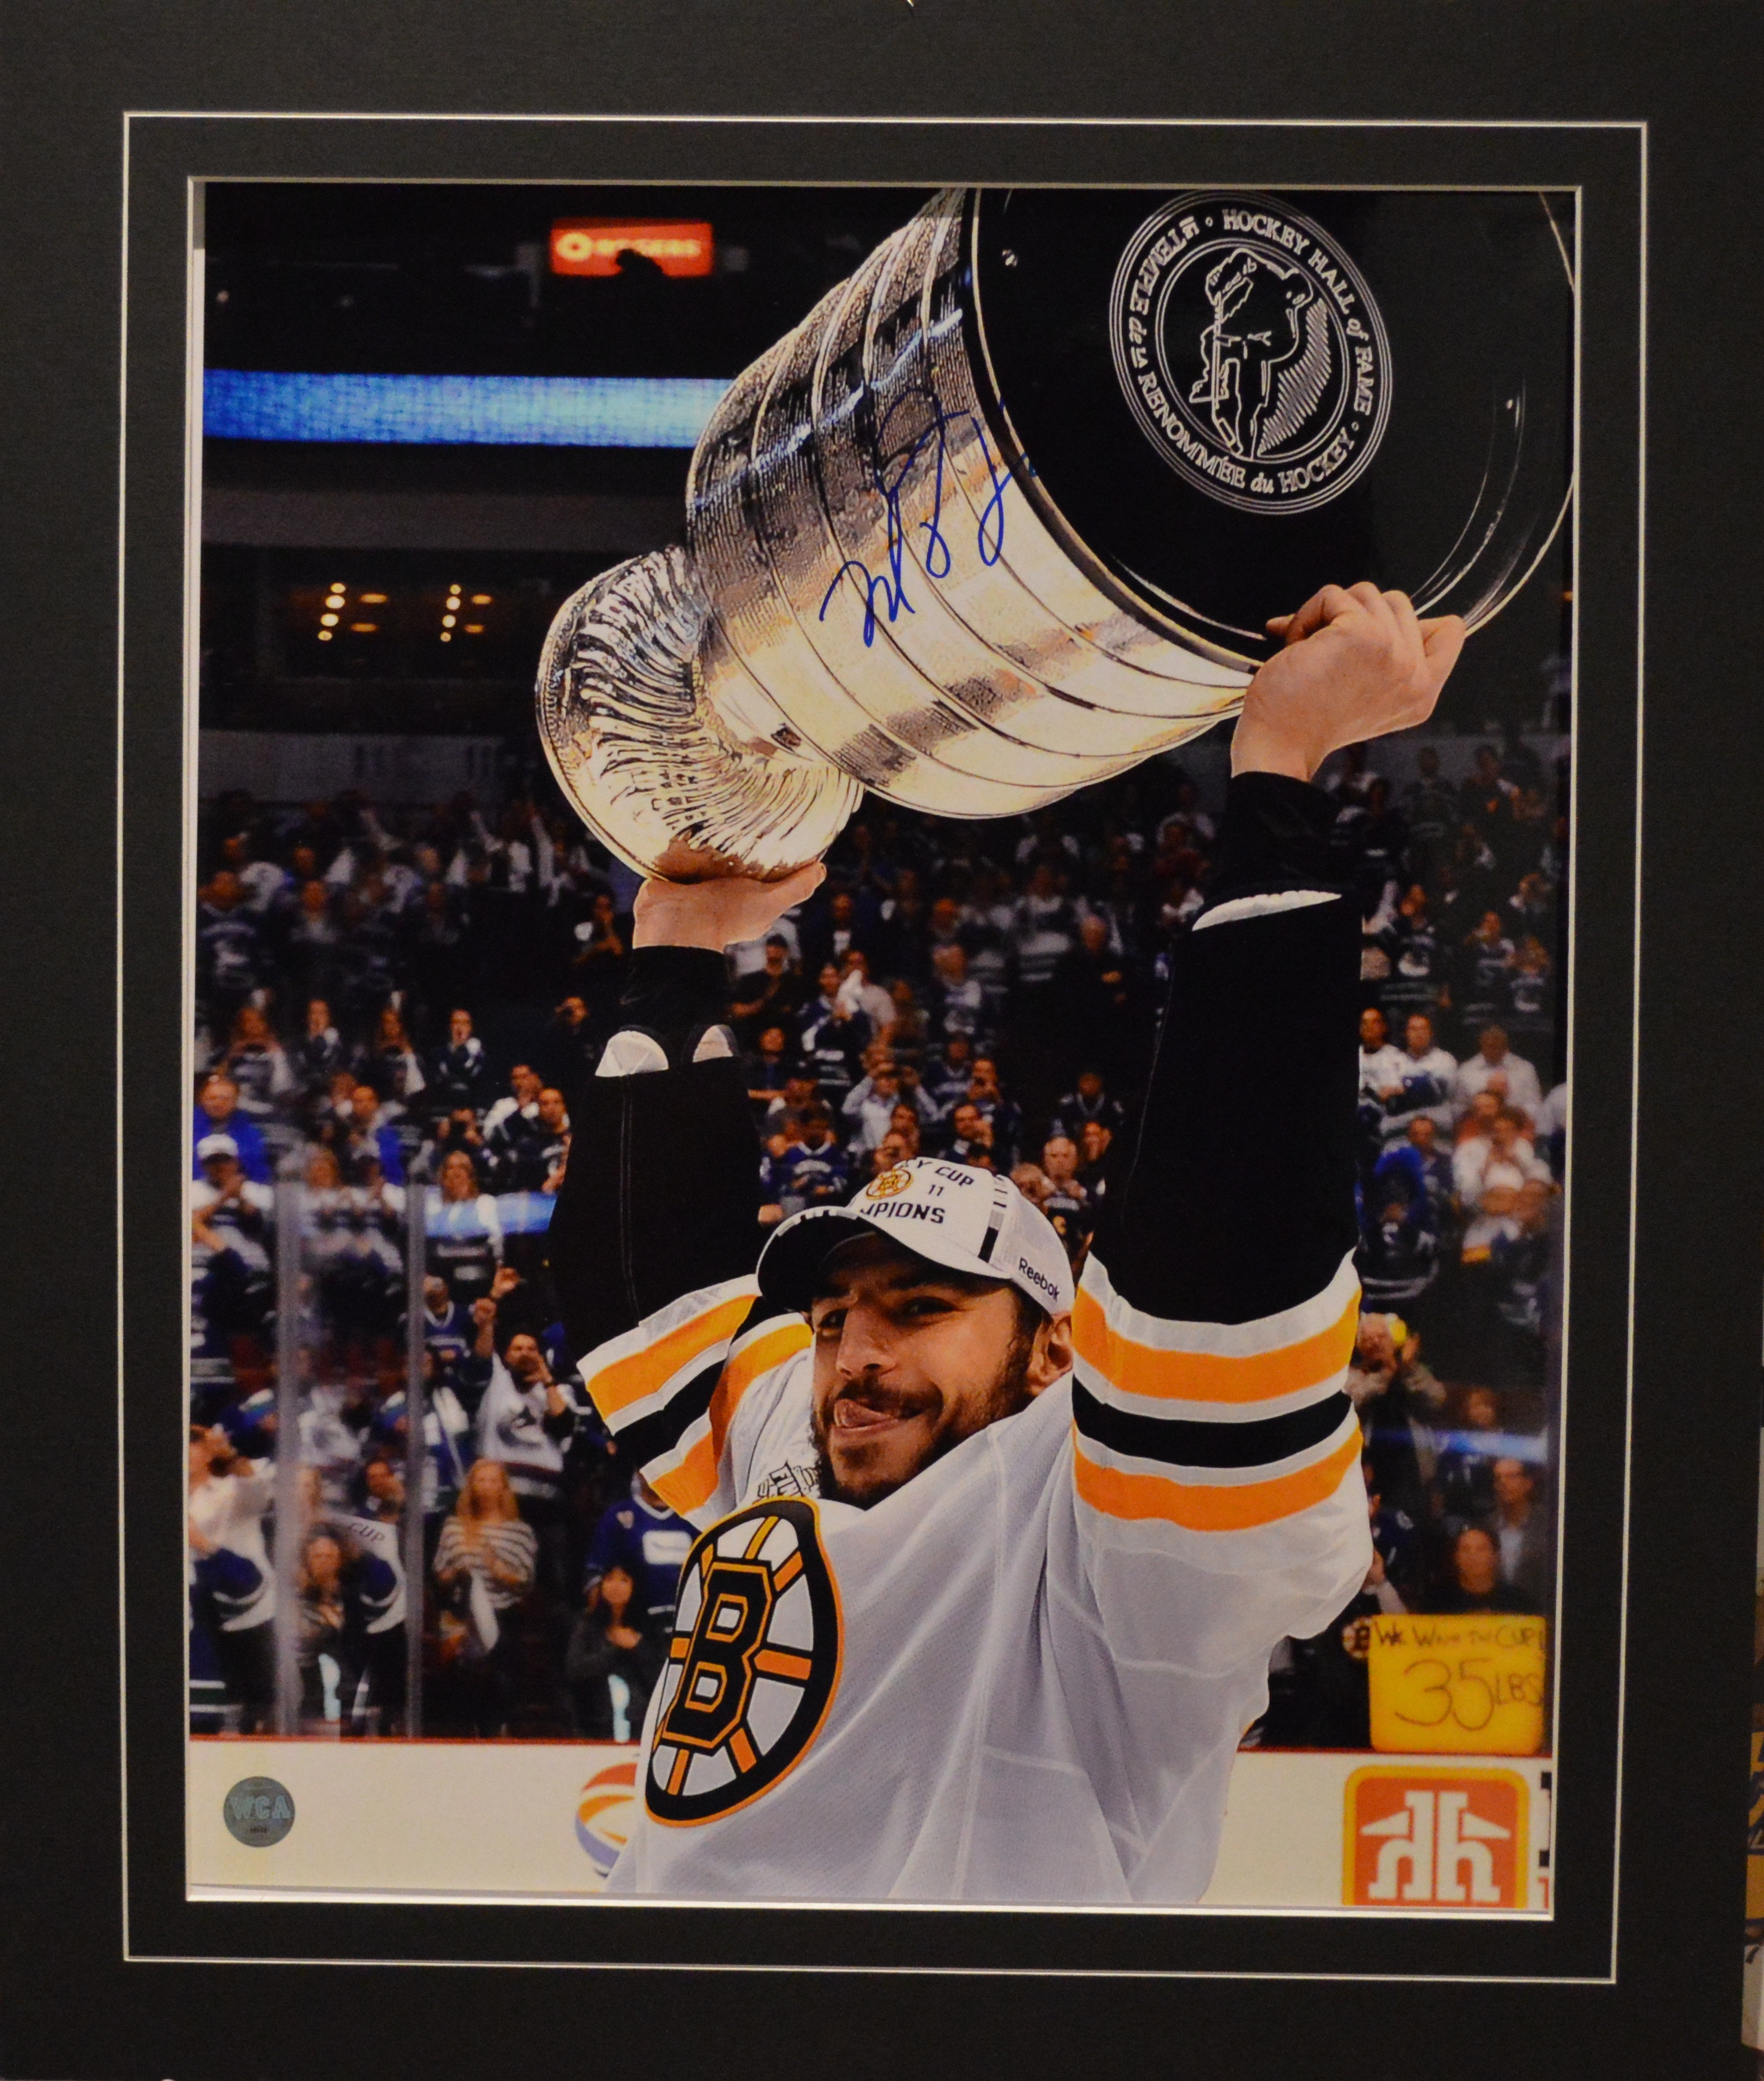 separation shoes 7f7fa c5431 Milan Lucic Autographed Boston Bruins 16 x 20 Photo